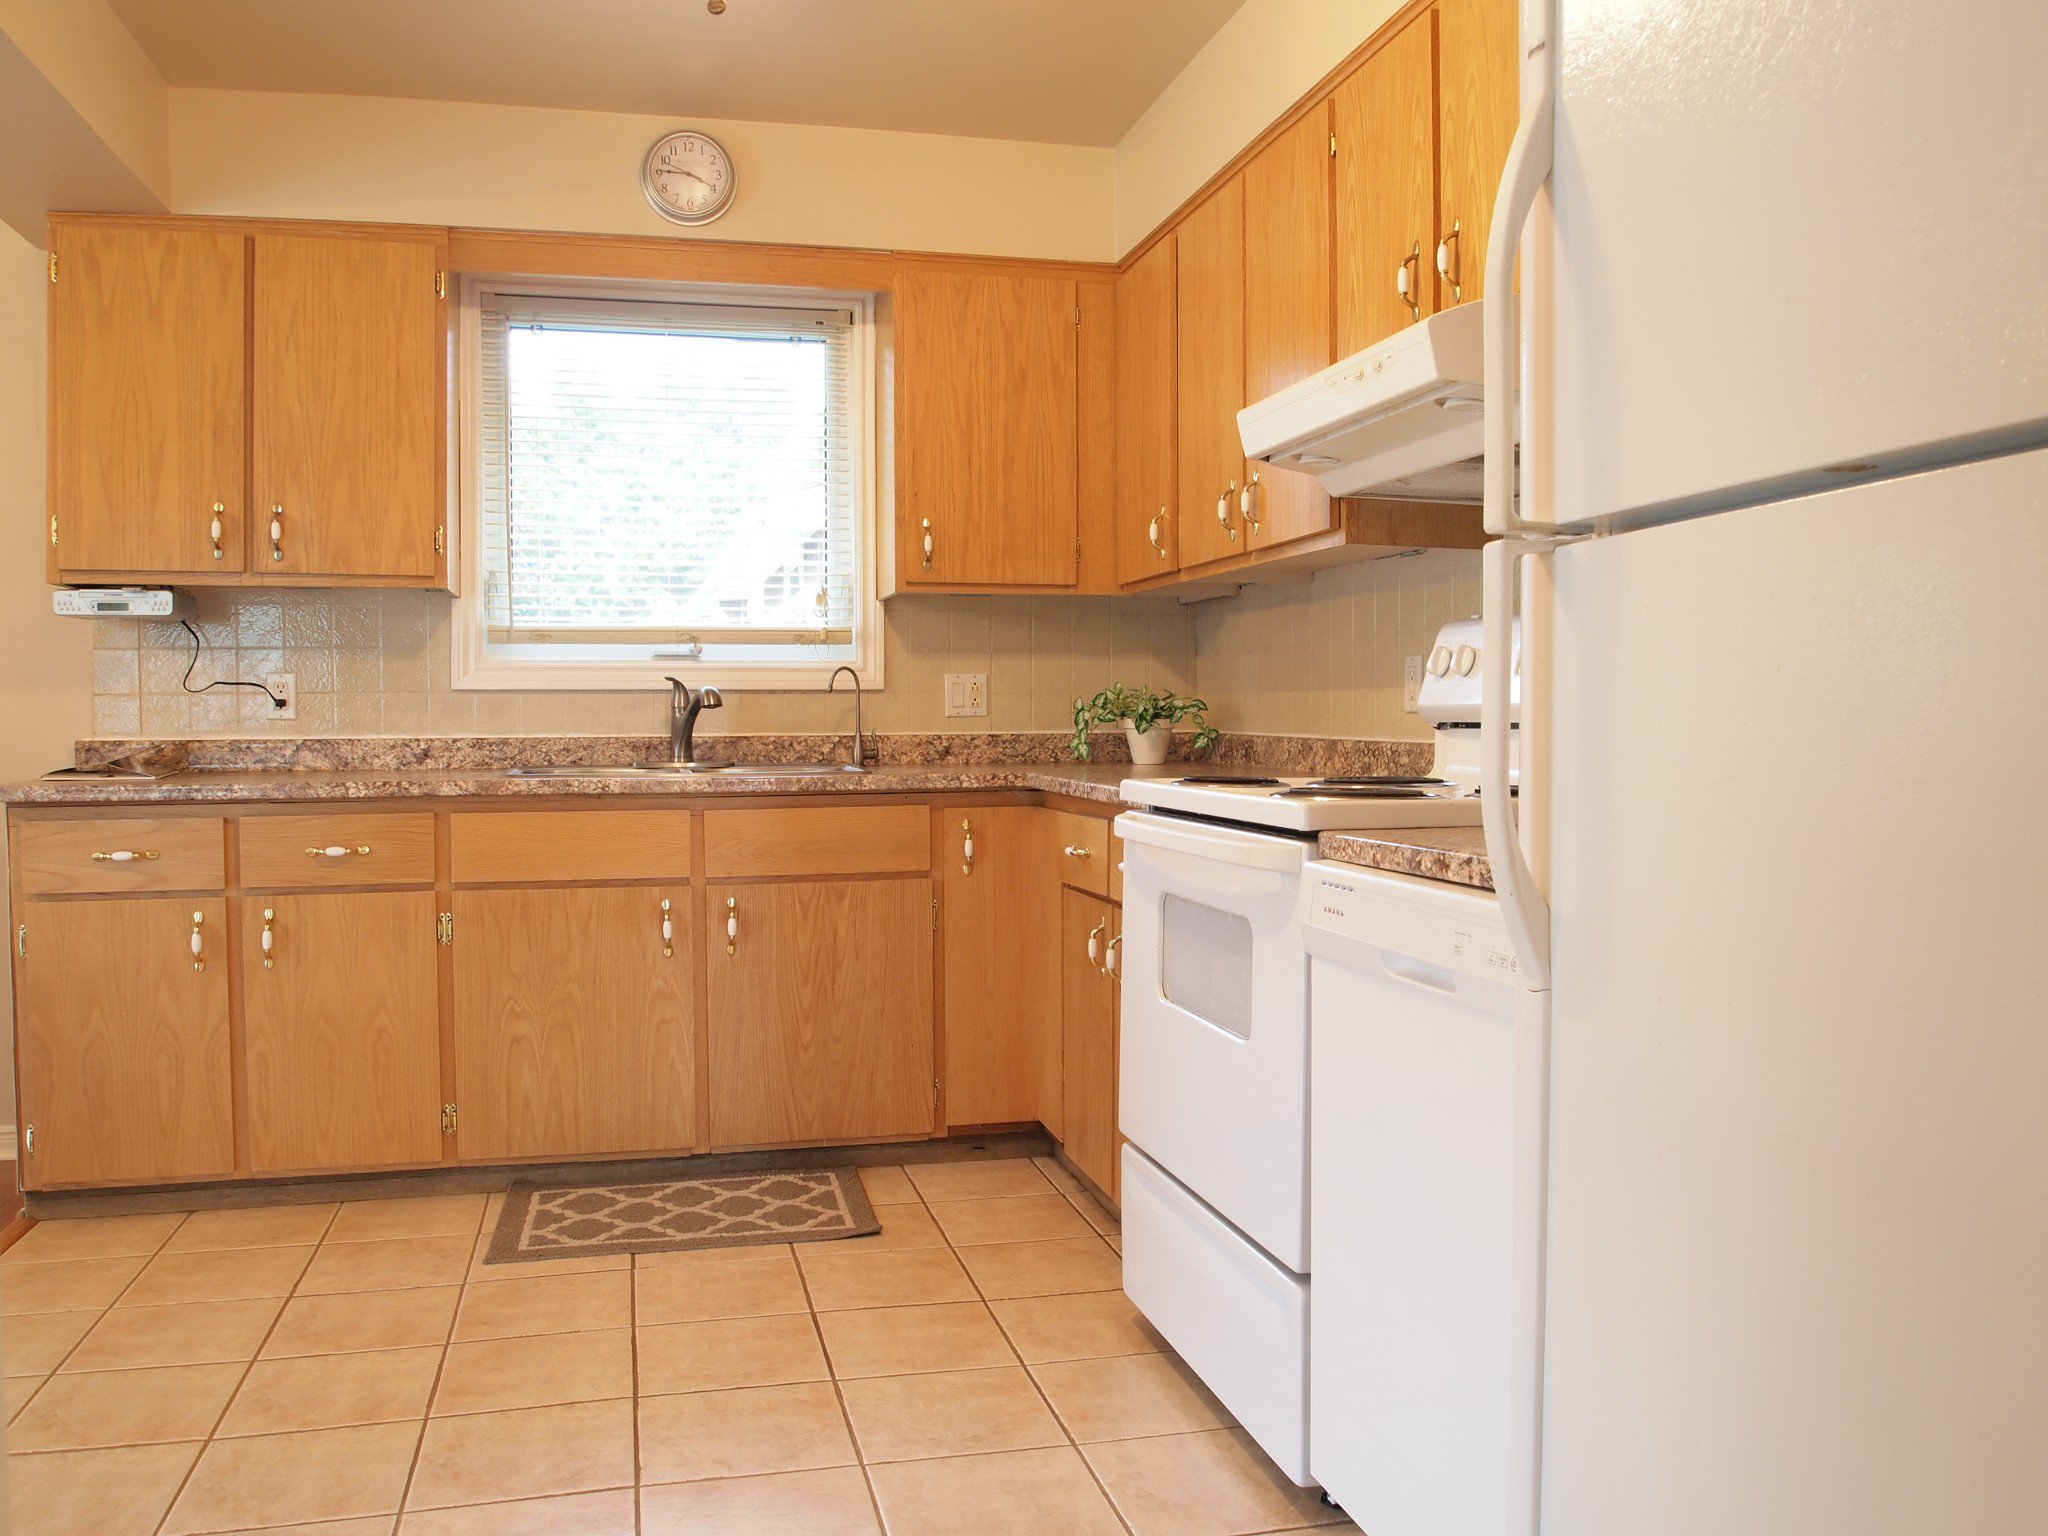 Photo 9: Photos: 105 Fifth St in : Beaverton Freehold for sale (Brock)  : MLS®# N4494538